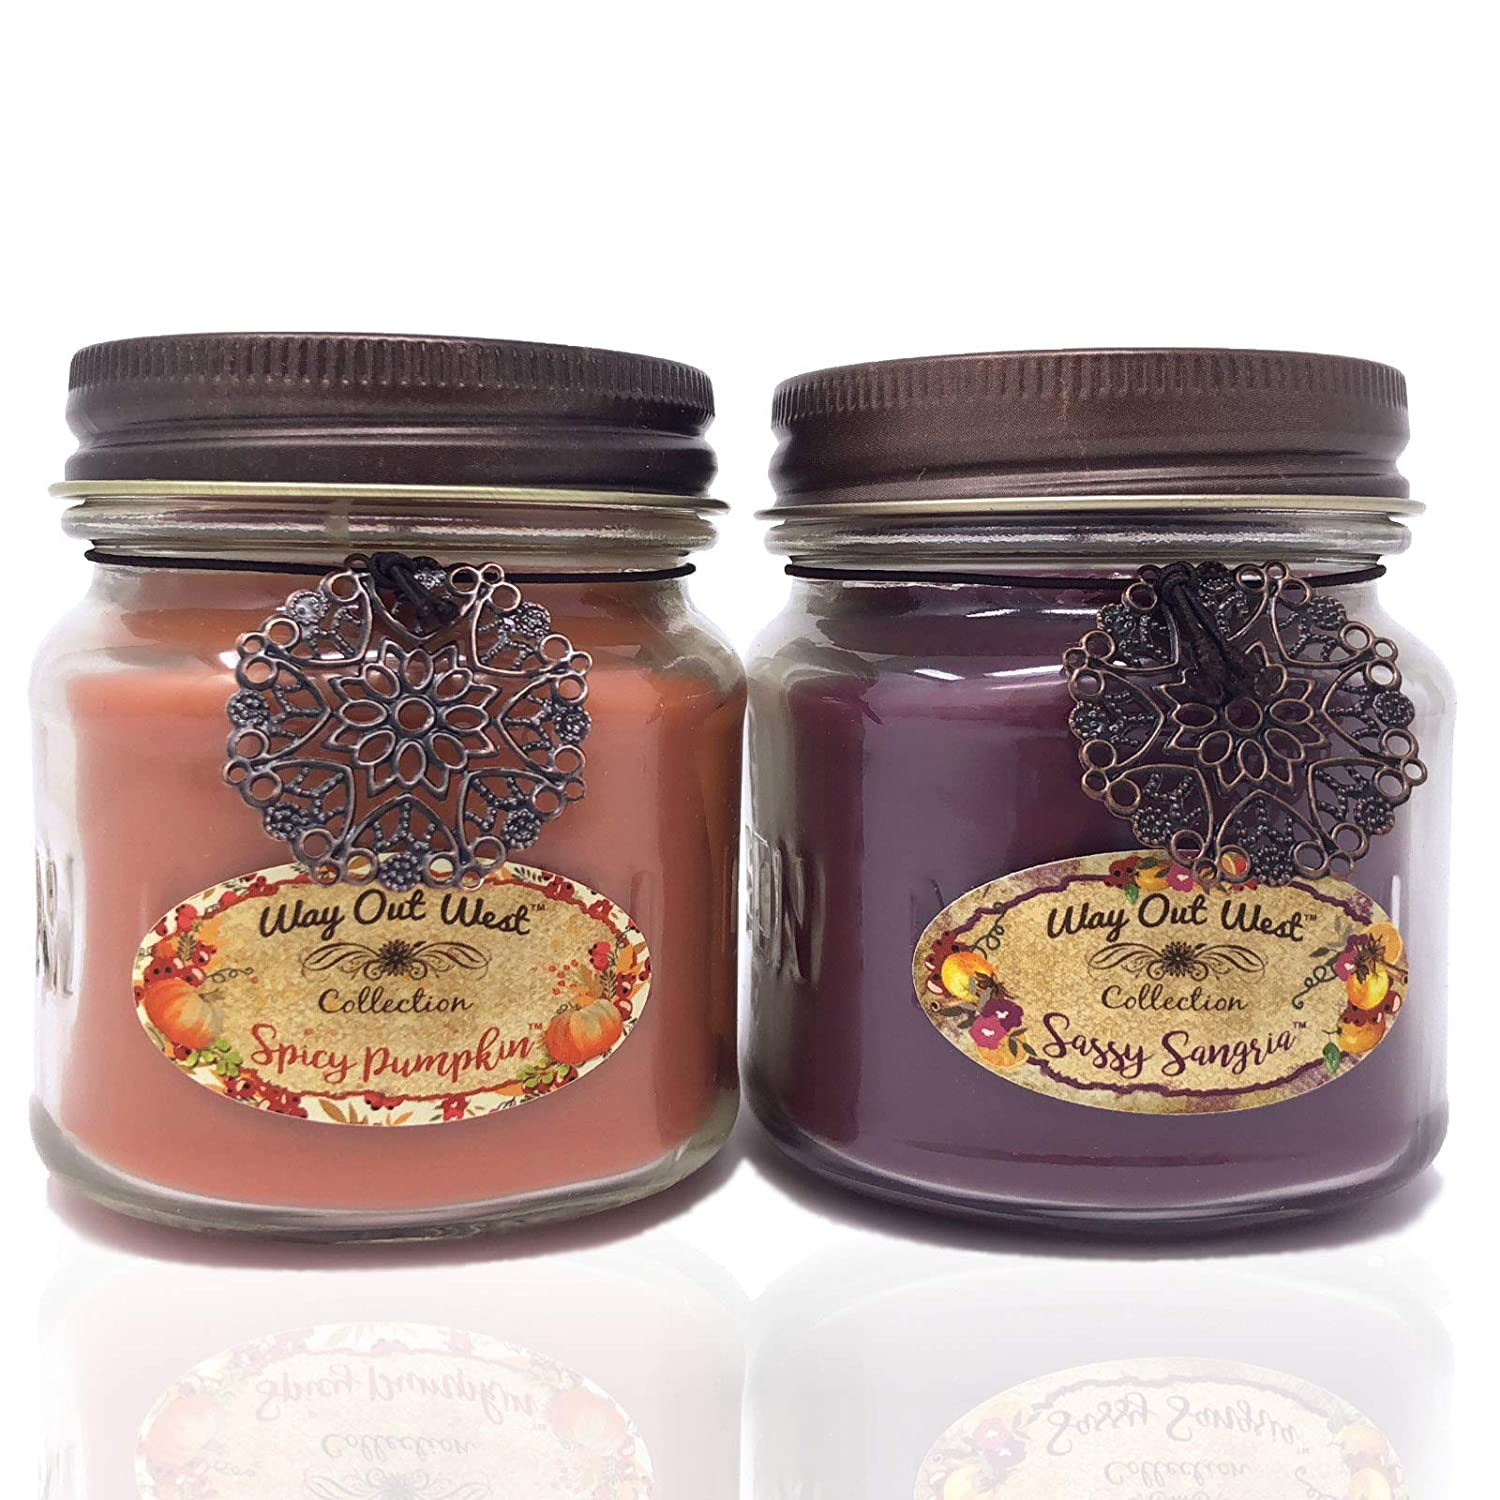 Way Out West Spicy Pumpkin & Sangria Jar Candle Gift Pack Set 2 Jar Candles- Fragrant, Long Lasting Soy Wax Blend Scented Candles - Delightful Cranberry Orange & Best Pumpkin Like Grandma's Kitchen! Ocotillo Southwest X16-SPU-SS